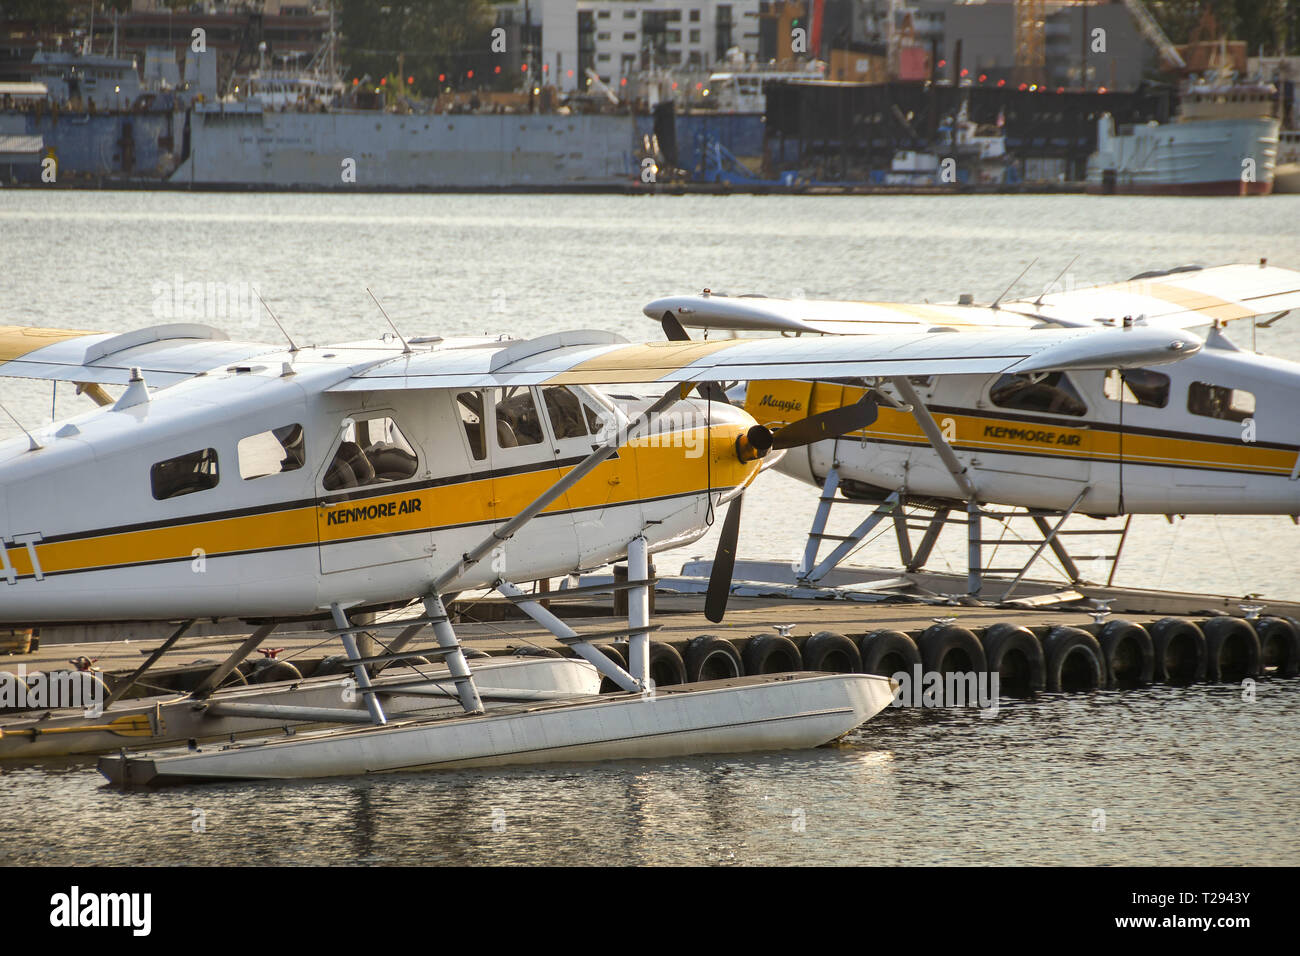 SEATTLE WA, USA - JUNE 2018: Floatplanes operated by Kenmore Air at the jetty of the seaplane terminal in Seattle at dawn. Stock Photo